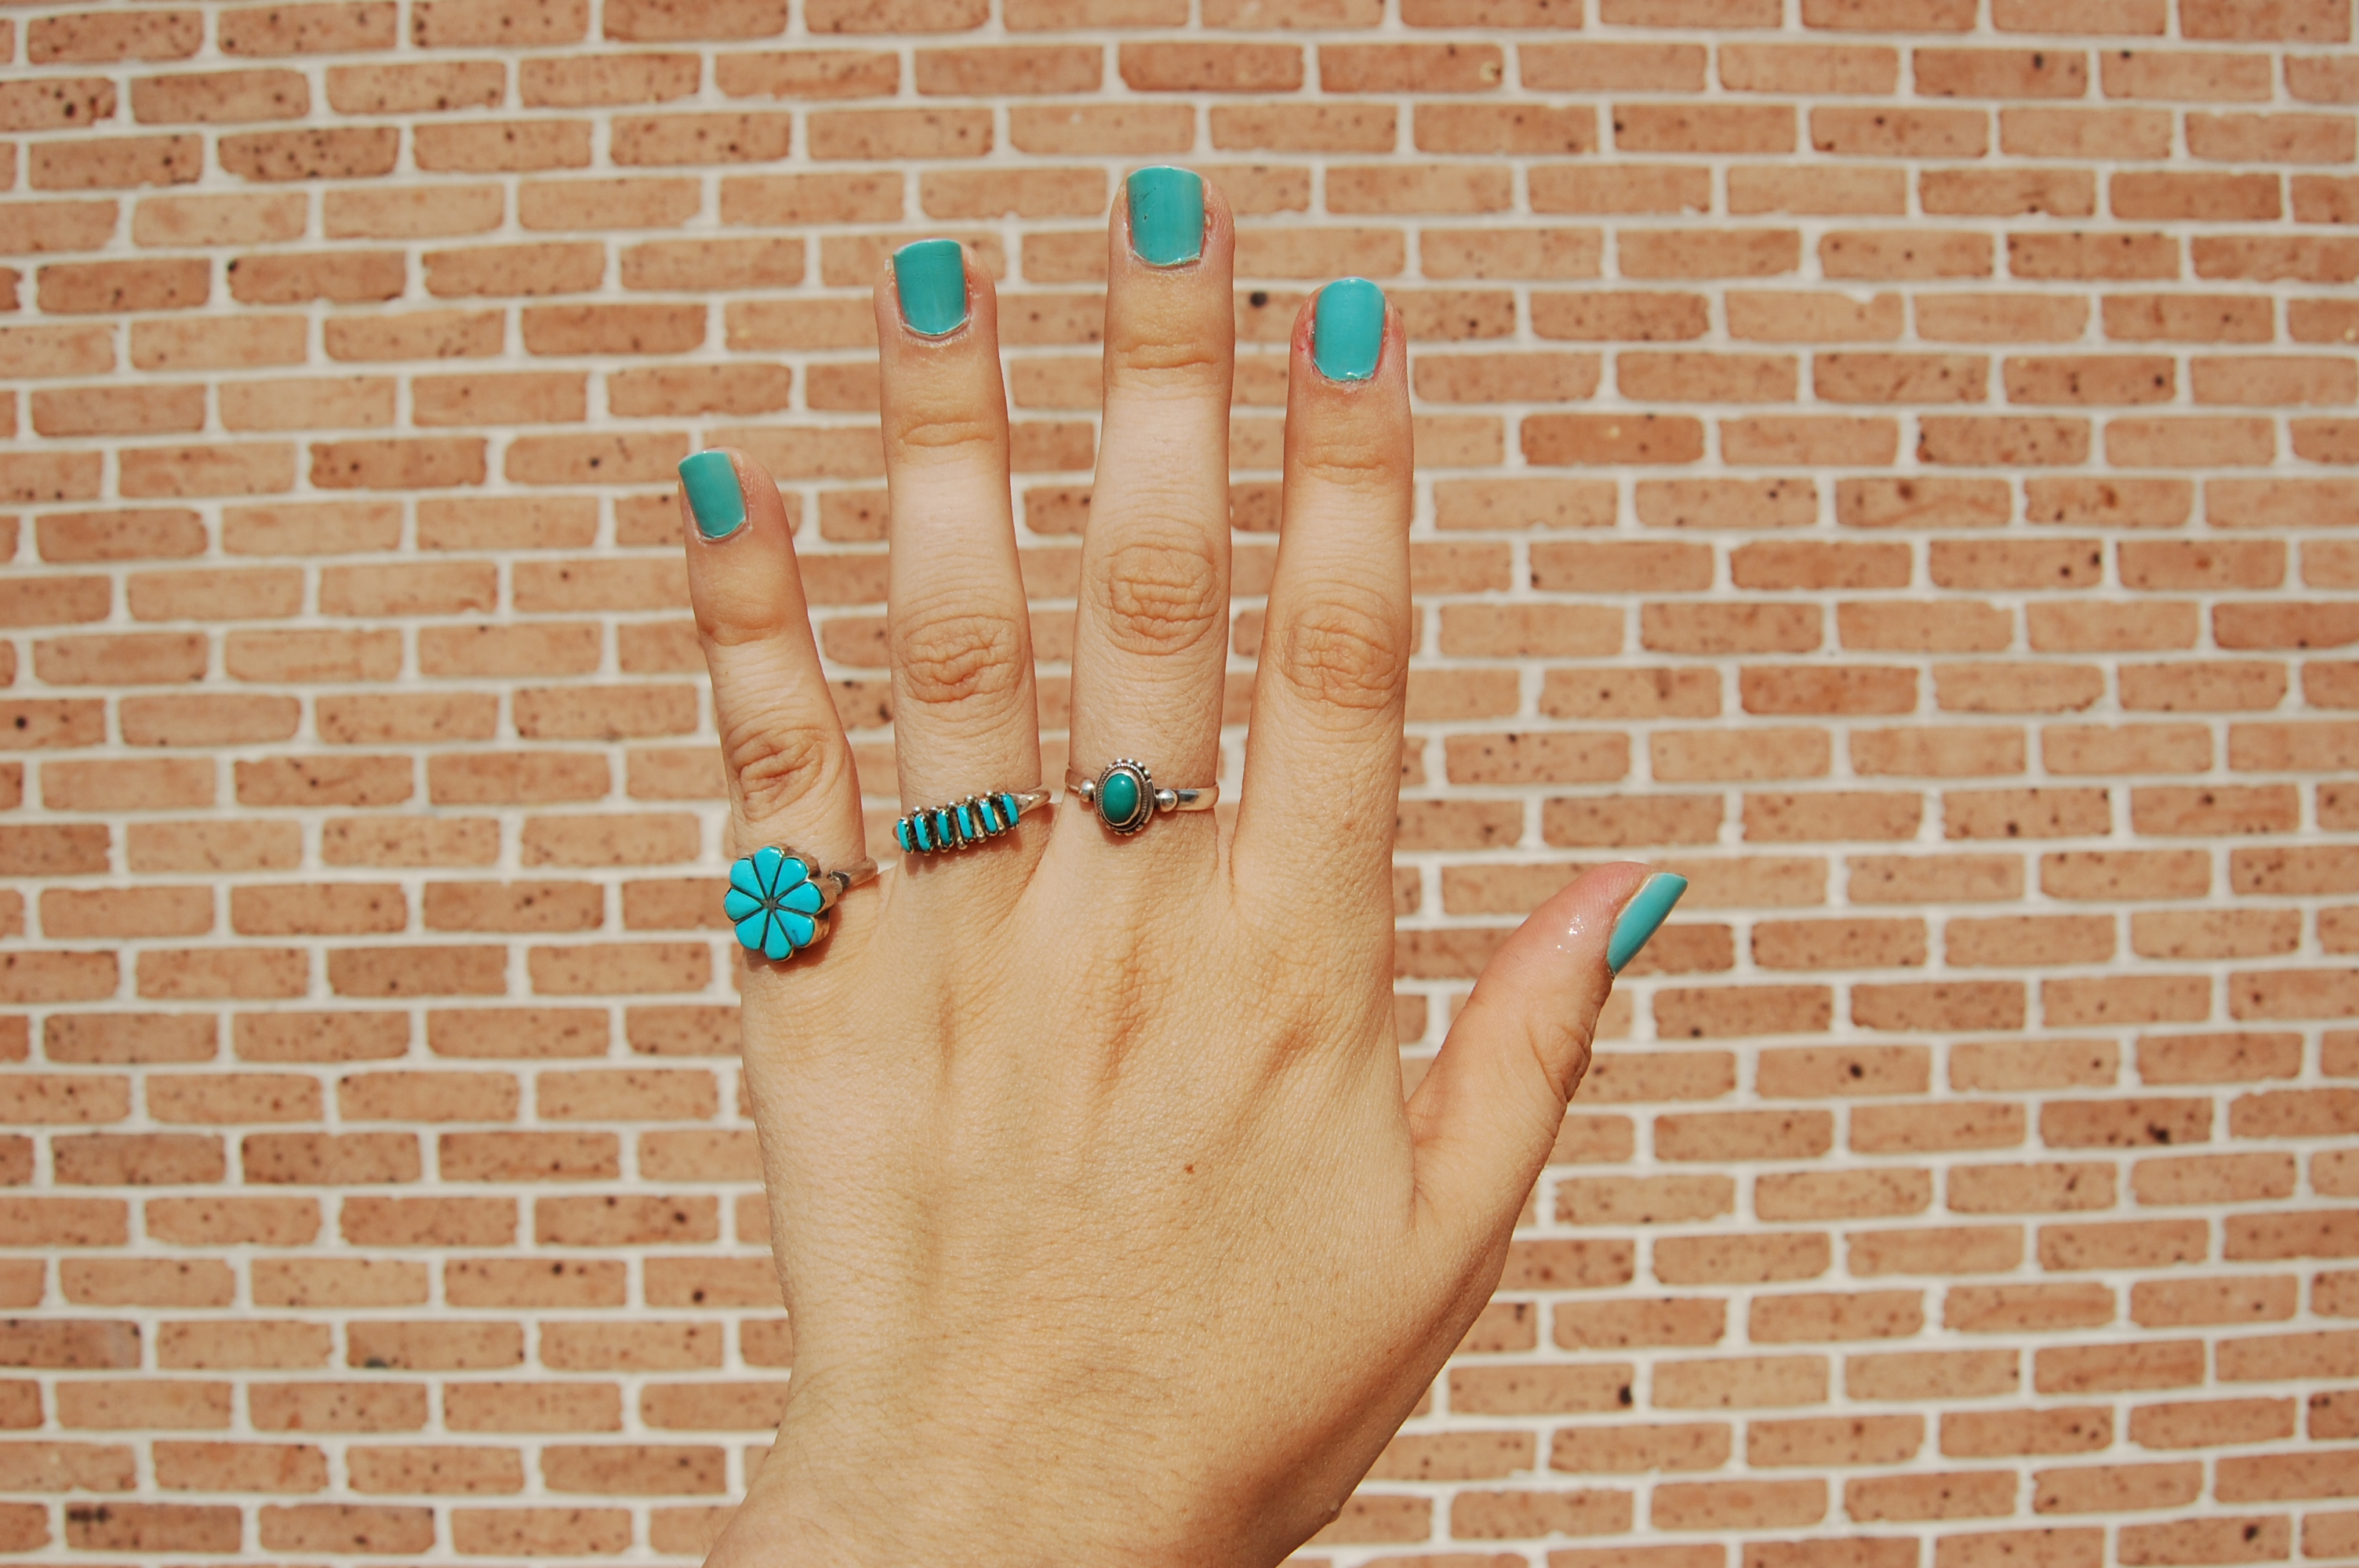 sneak peak denas ring collection james avery wedding bands these are my other three favorite turquoise rings the pinky one i got on my second trip to New Mexico at the White Sands gift shop i m super cheep and